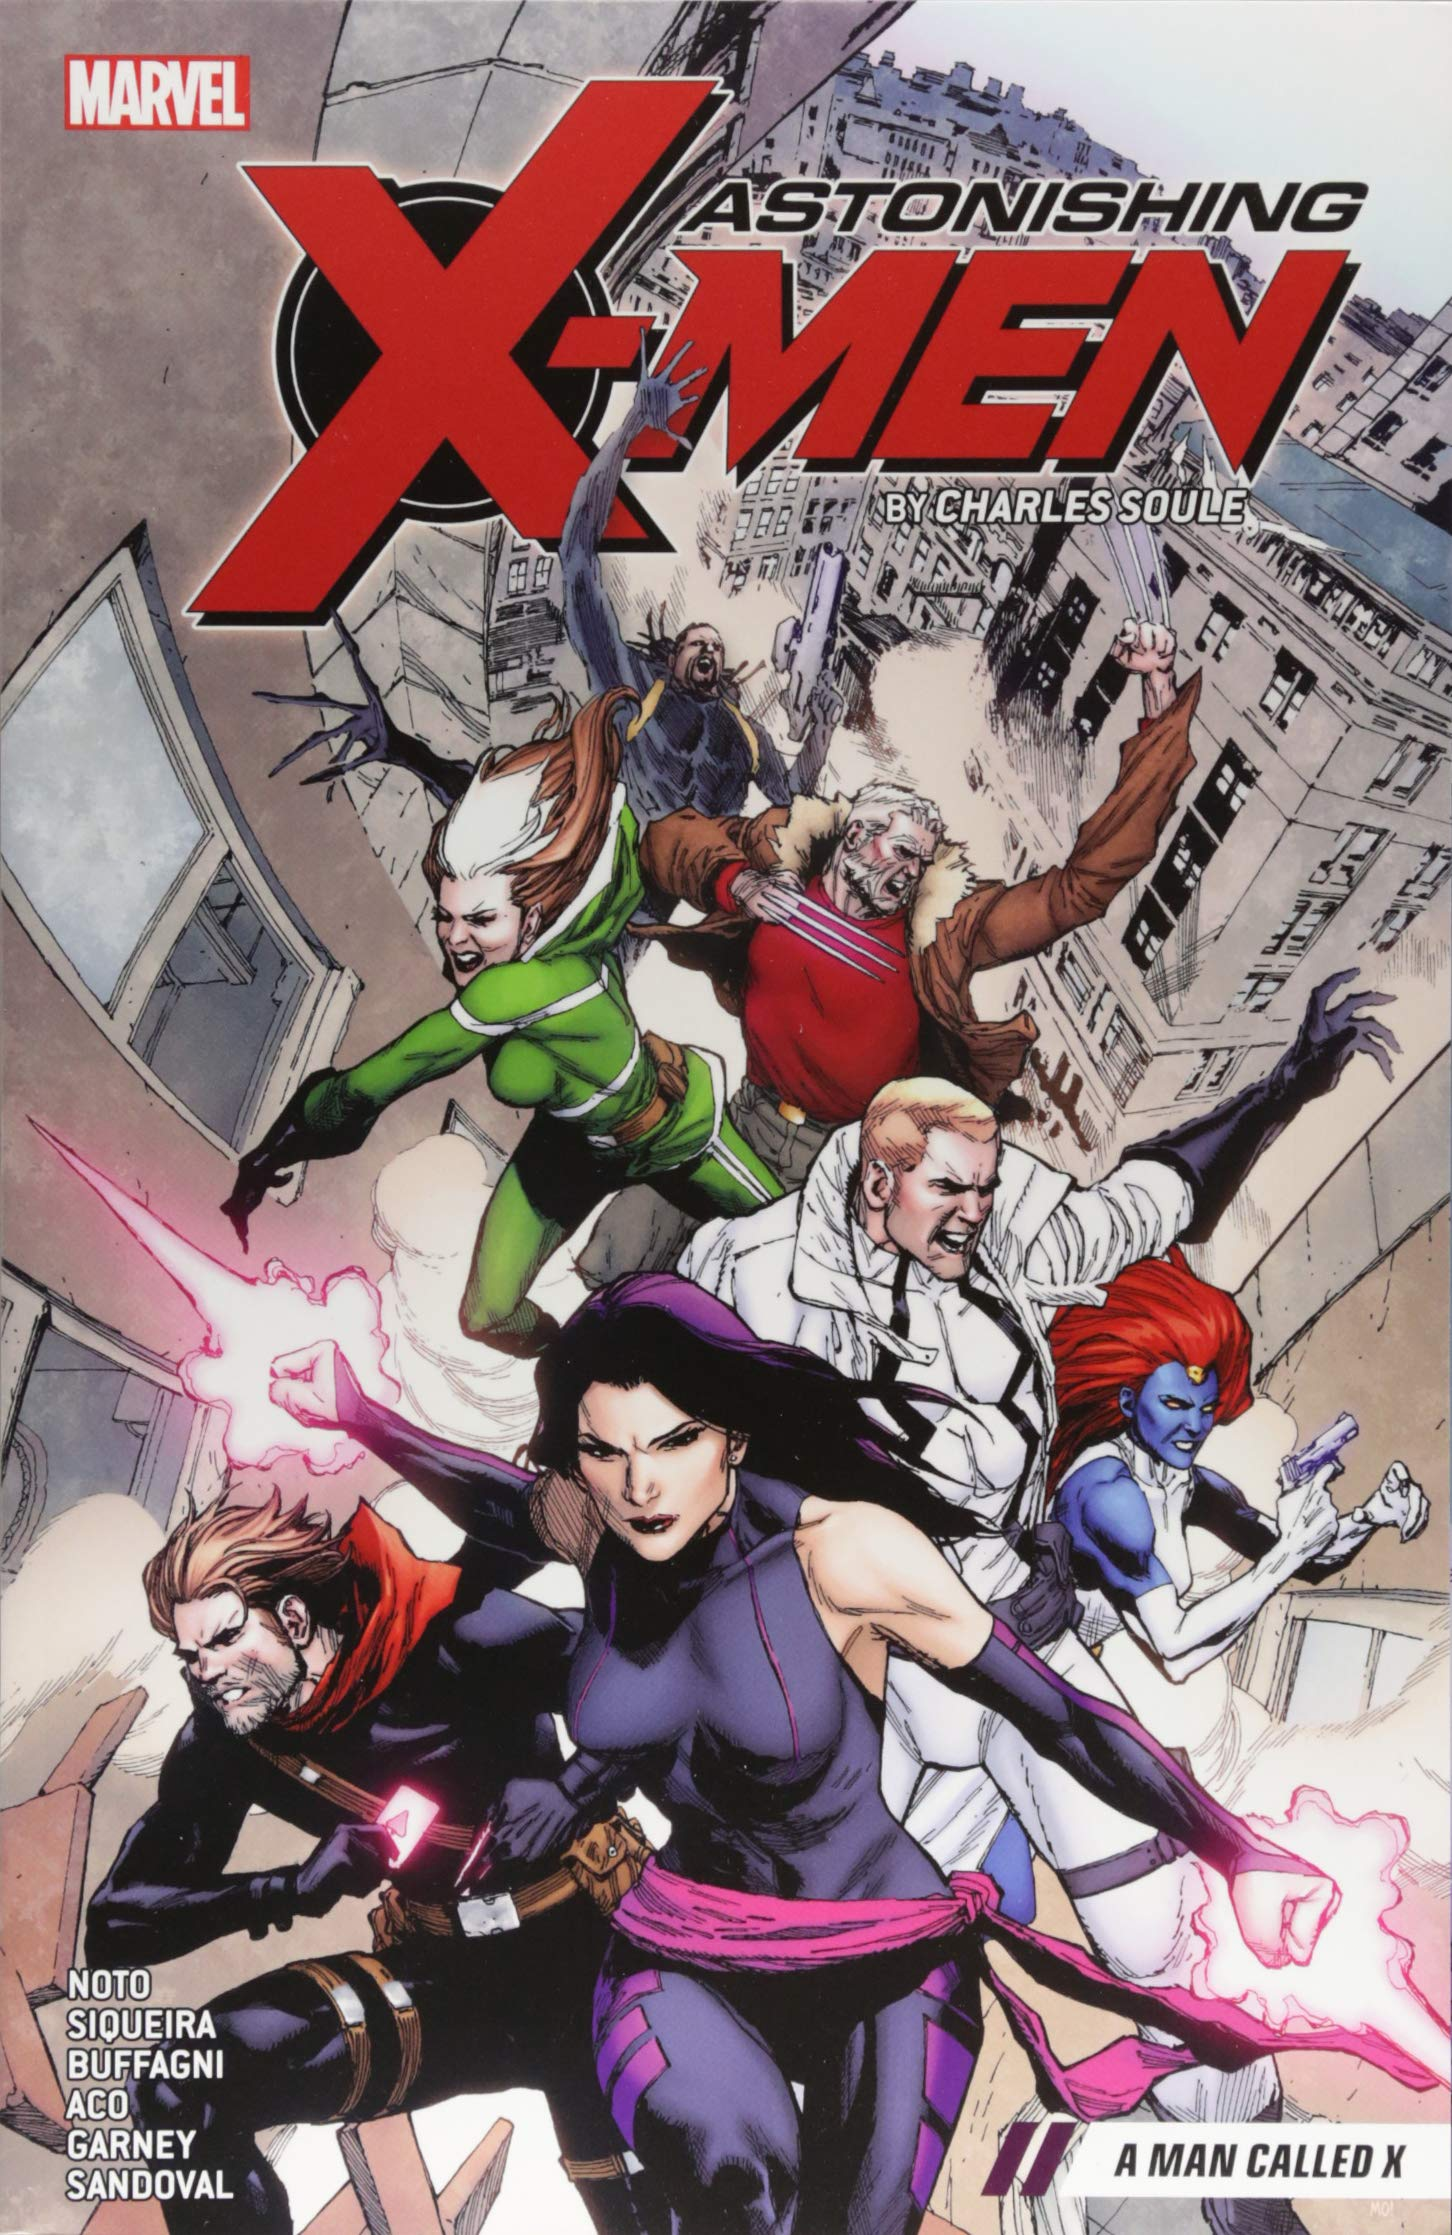 Read Online Astonishing X-Men by Charles Soule Vol. 2: A Man Called X ebook